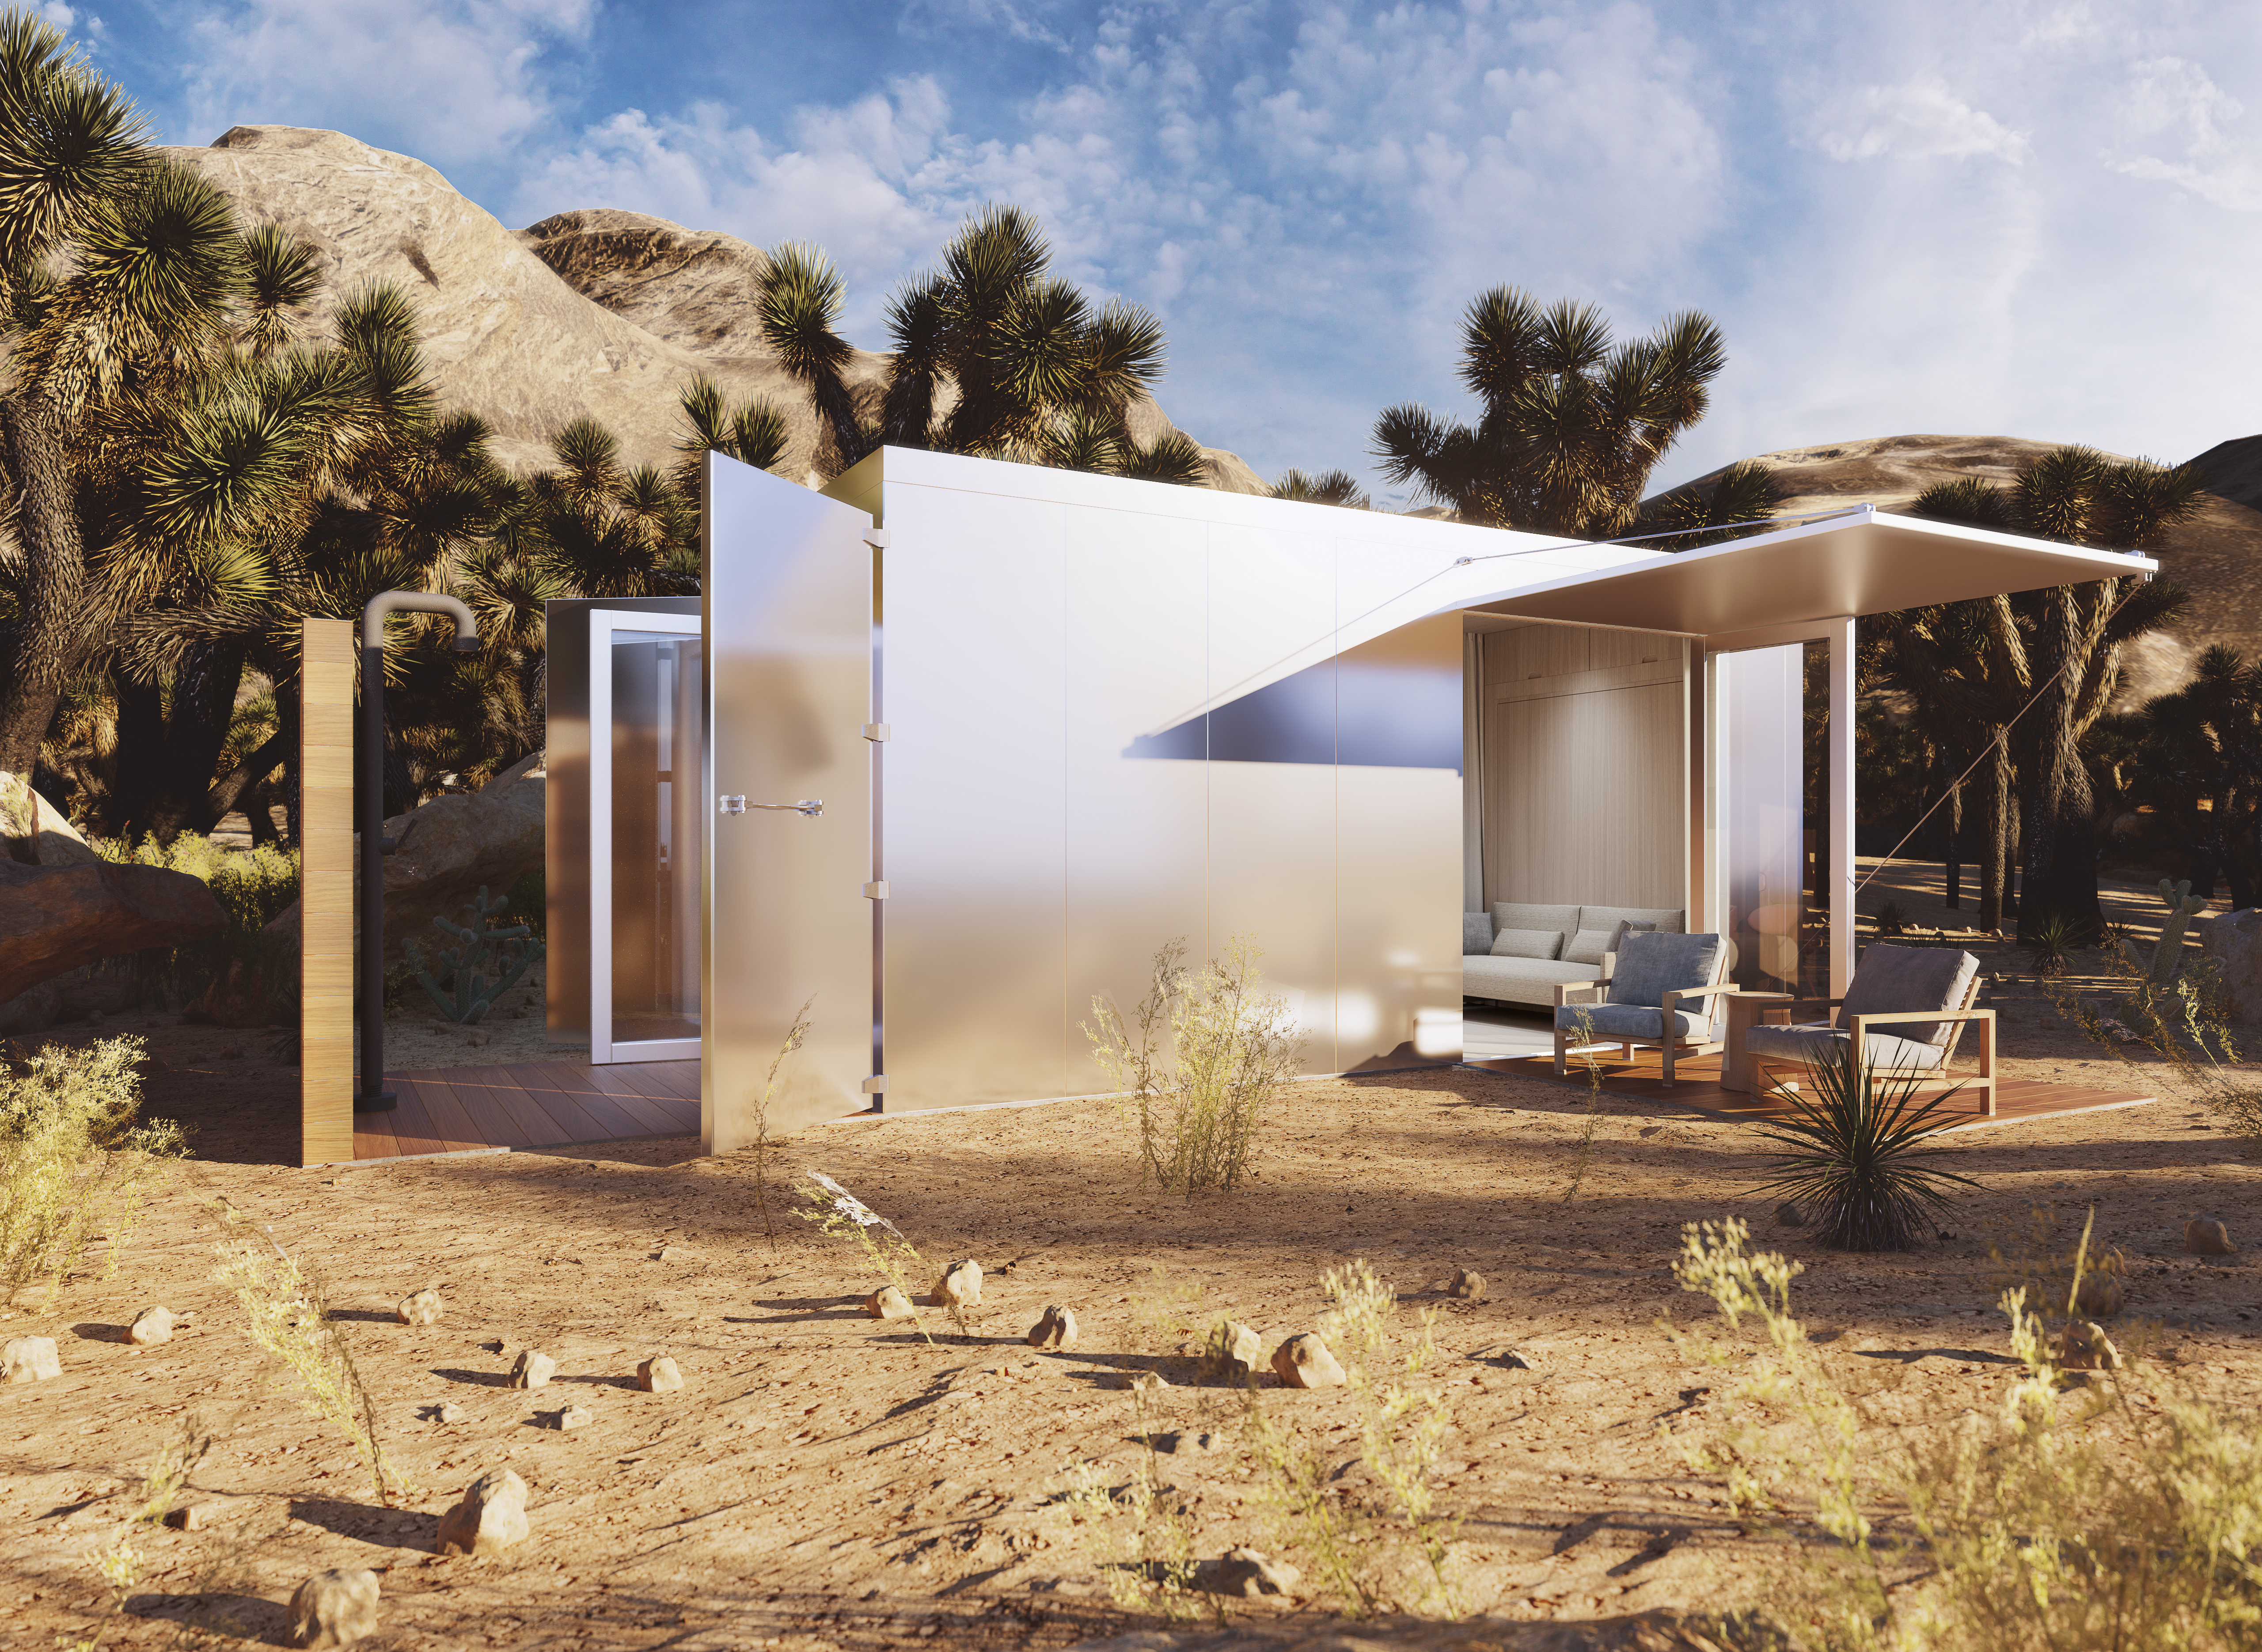 A luxury shipping container home designed for fire-prone areas